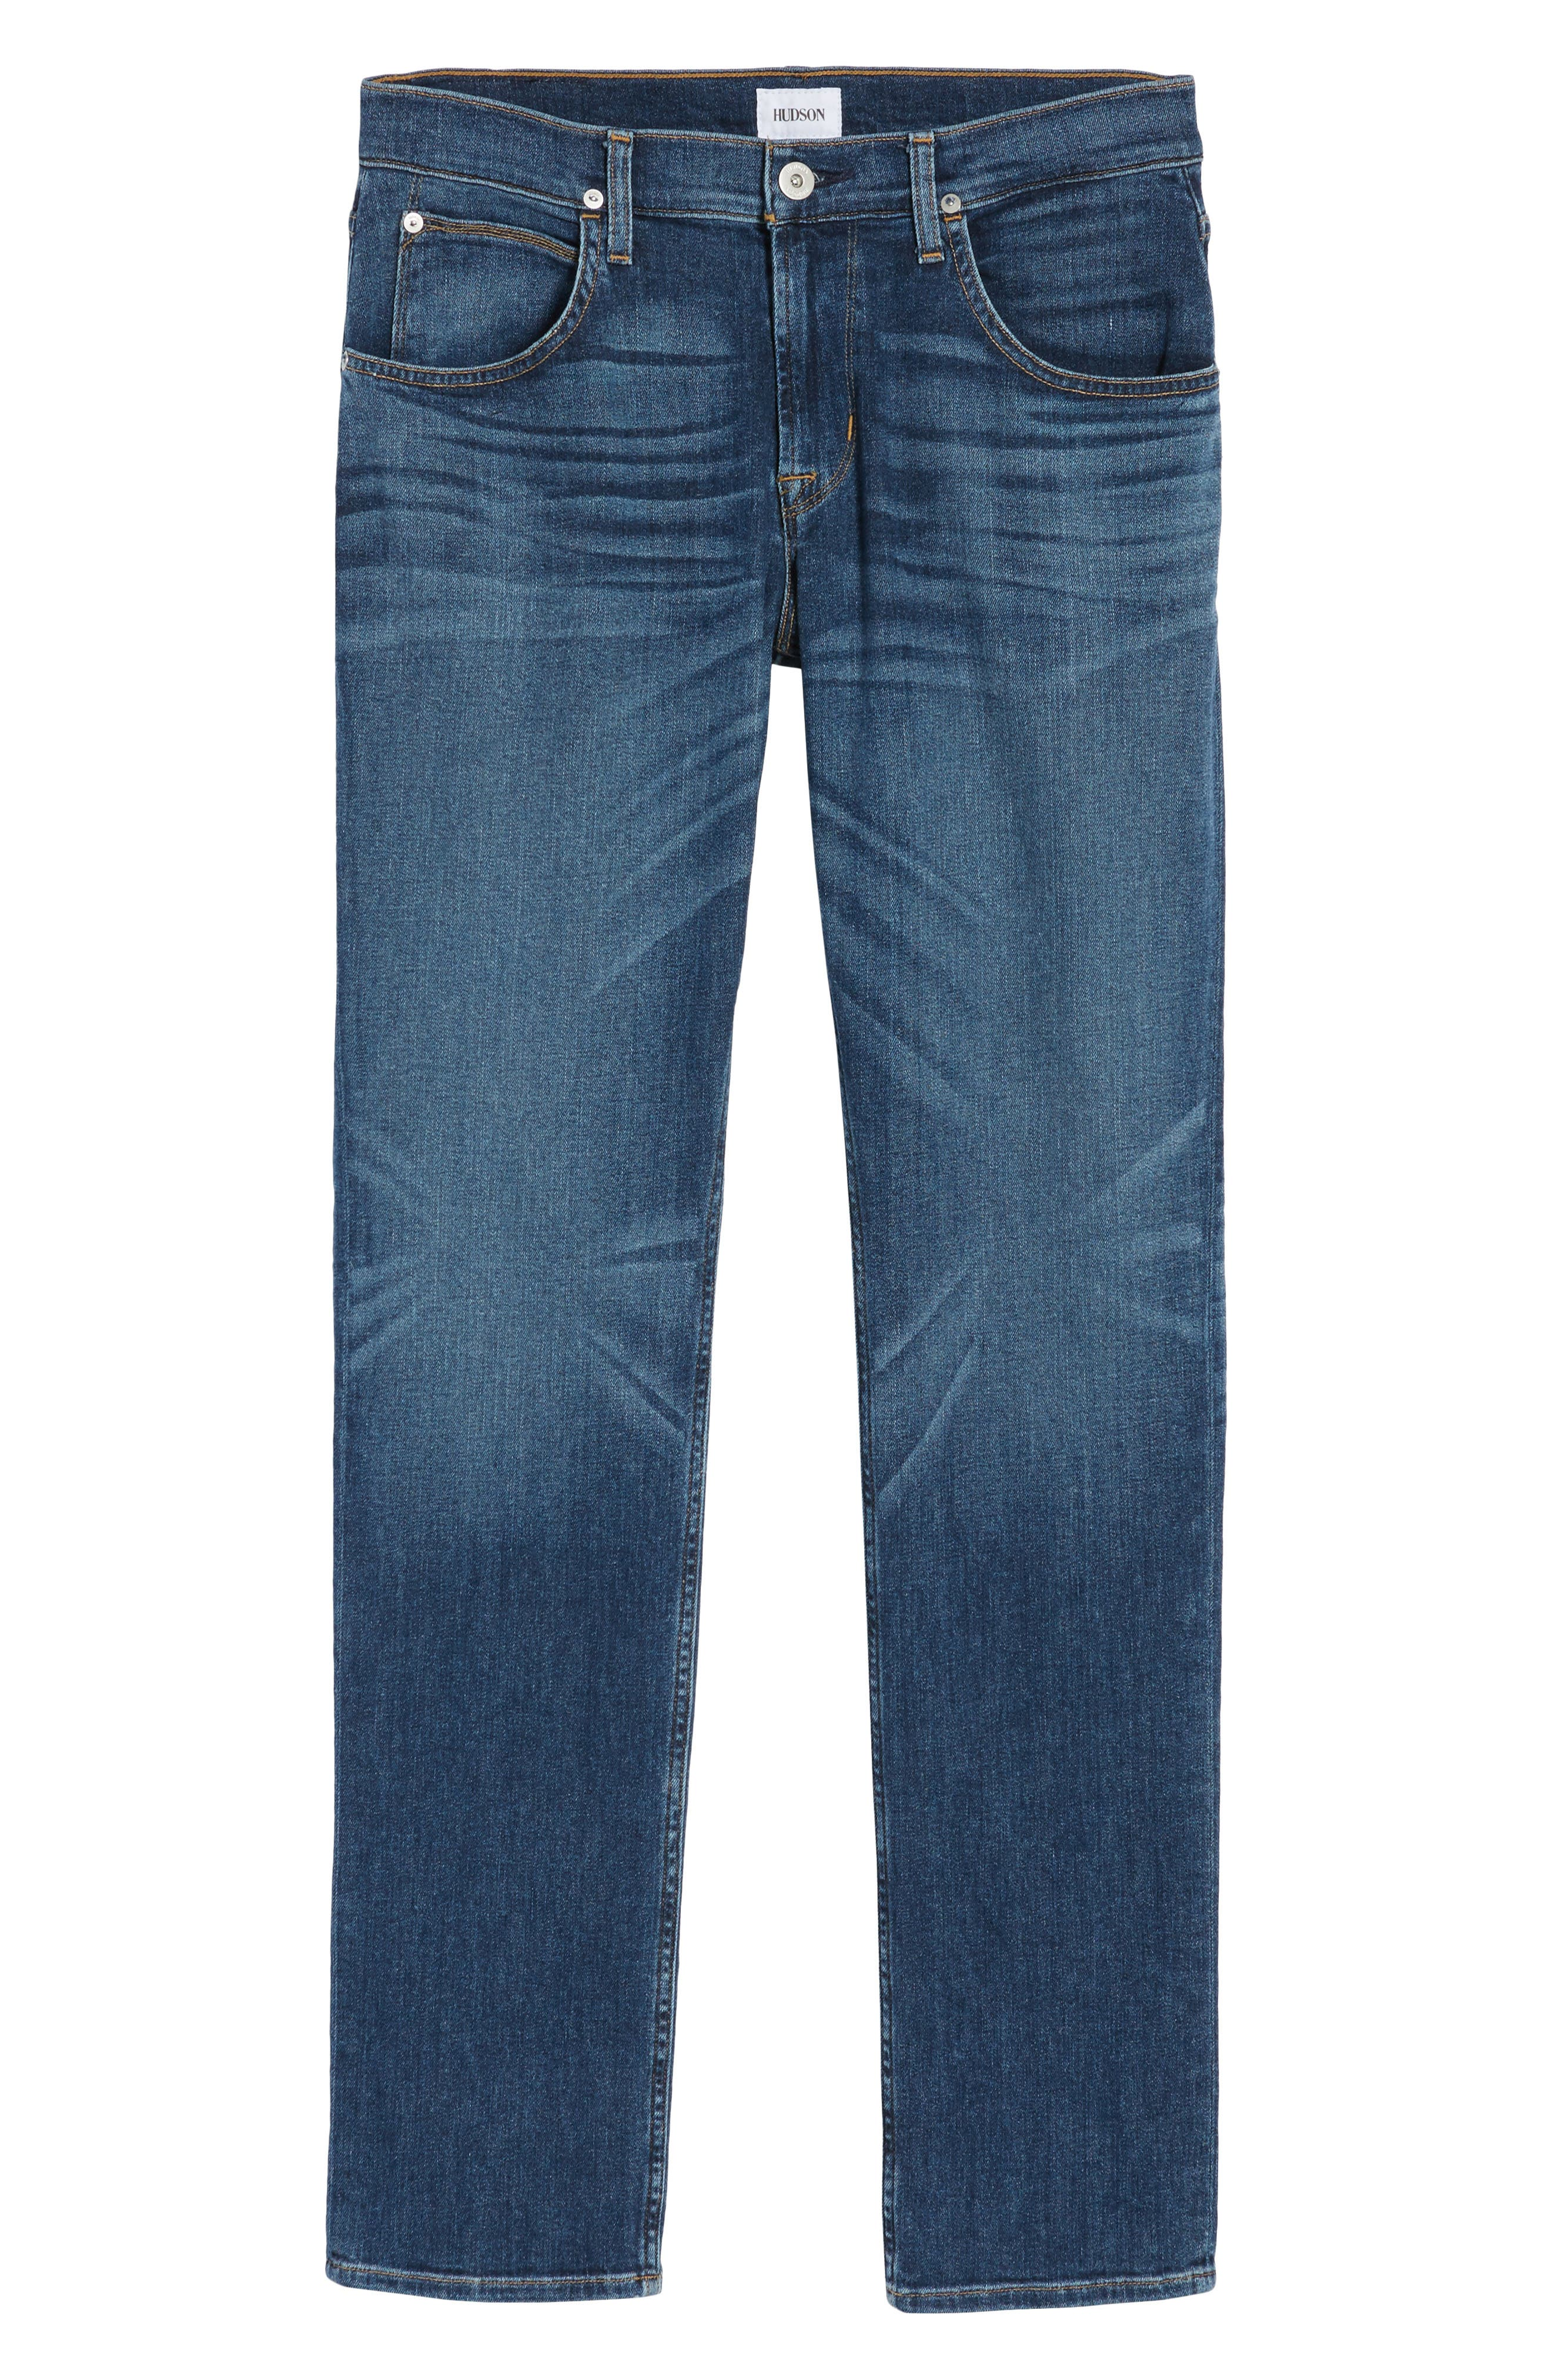 Blake Slim Fit Jeans,                             Alternate thumbnail 6, color,                             420